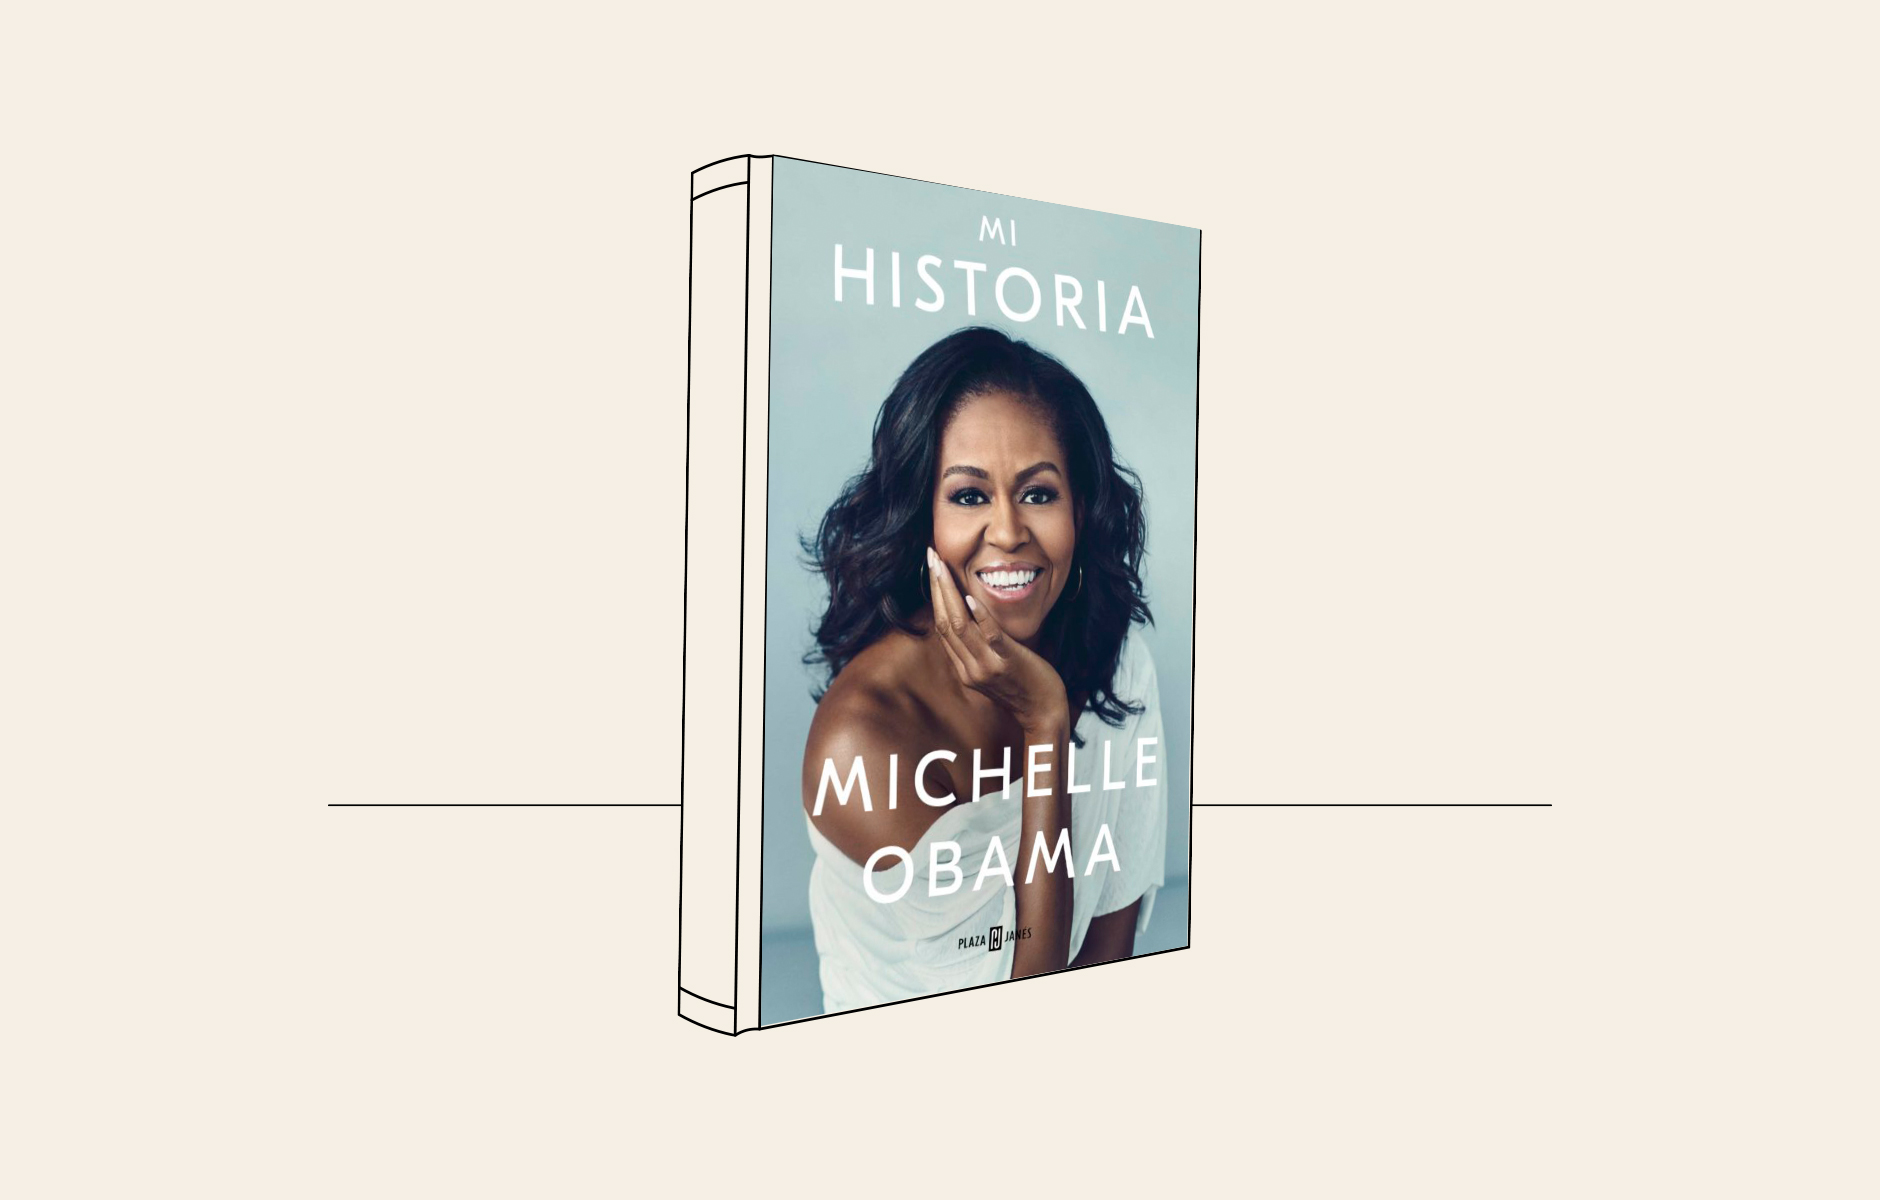 michelle_obama_mi_historia_dia_del_libro_revista_mine